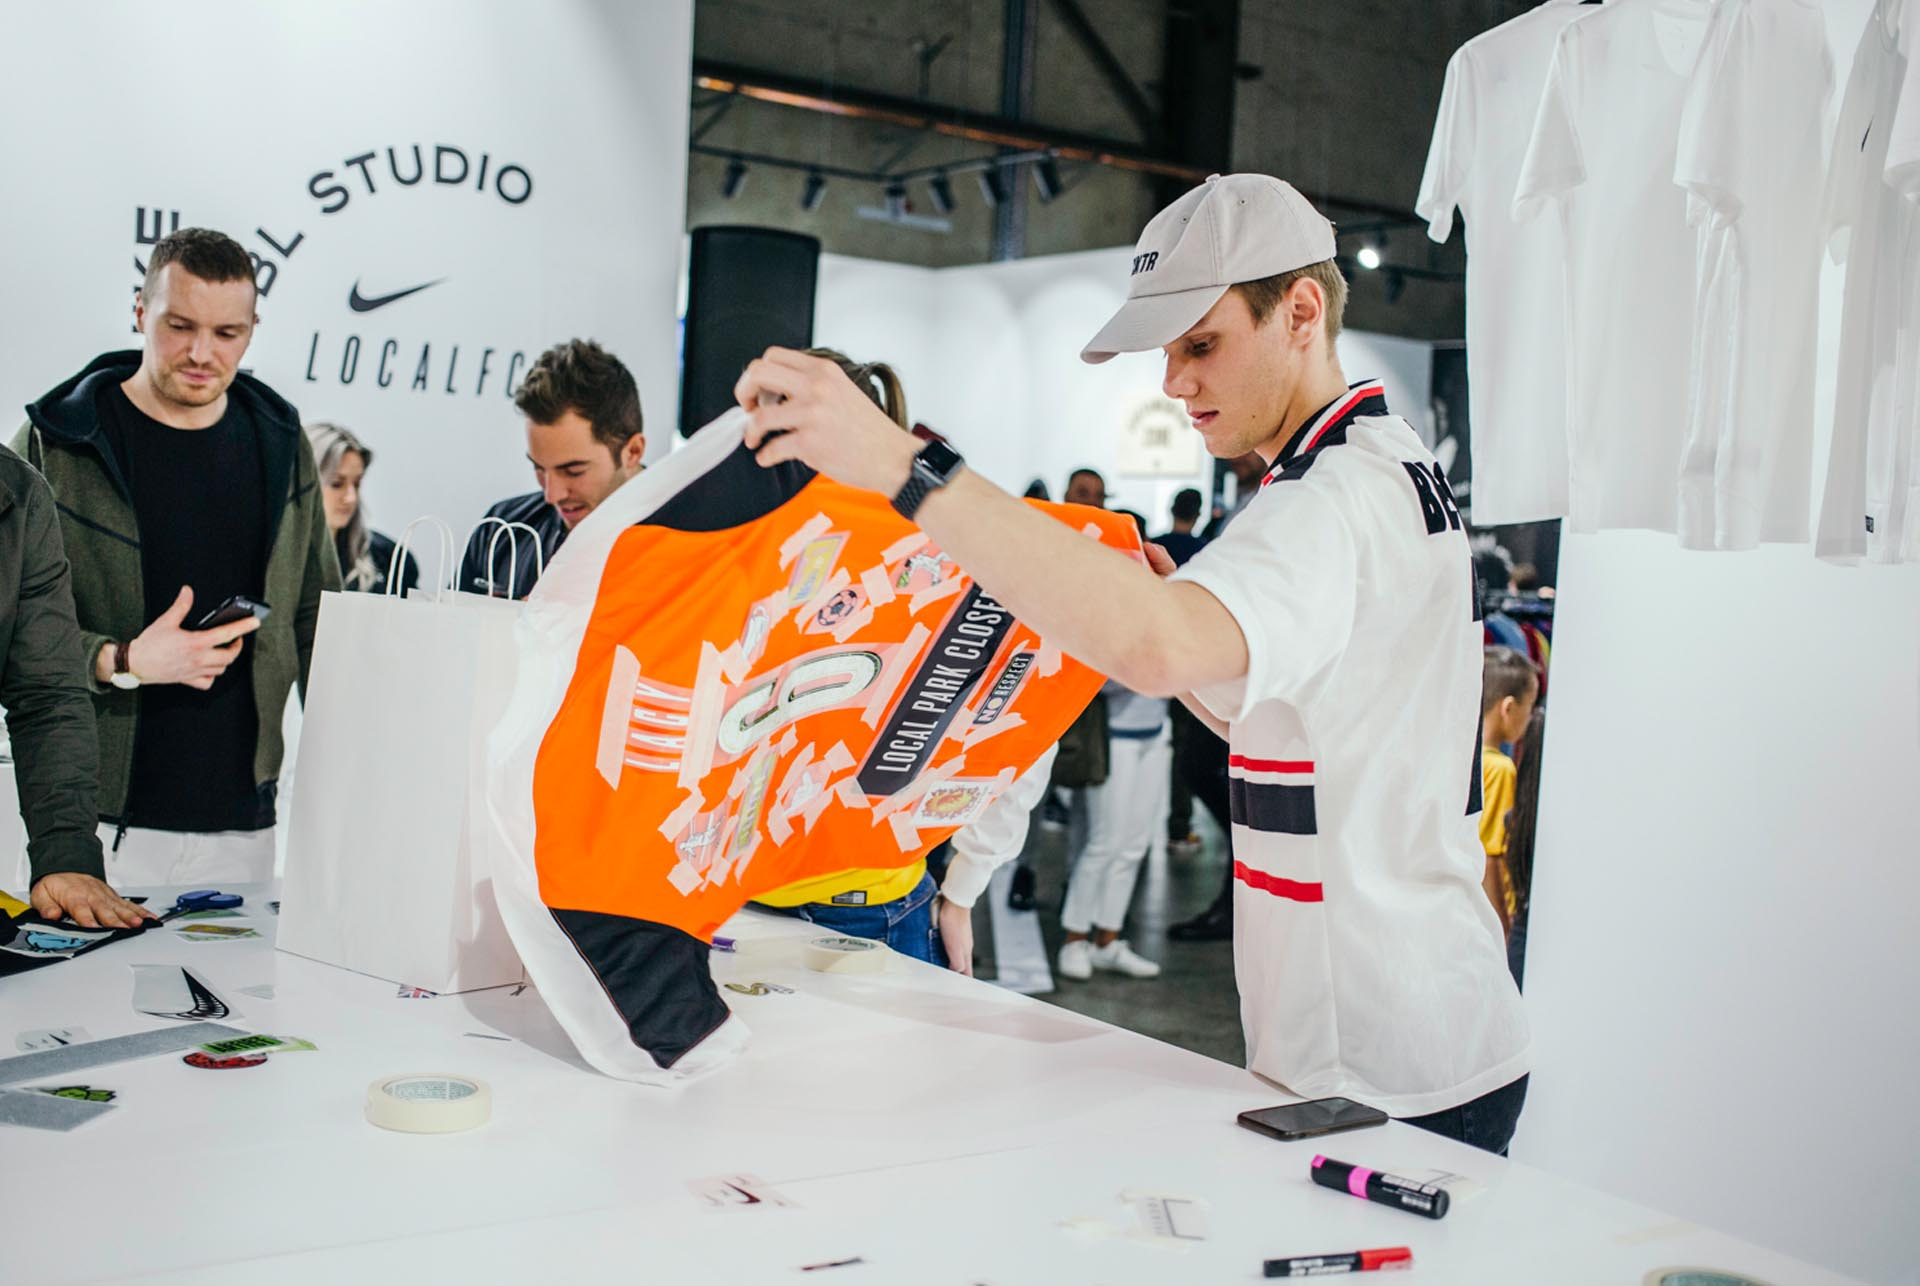 24-local-fc-nike-jersey-workshop.jpg